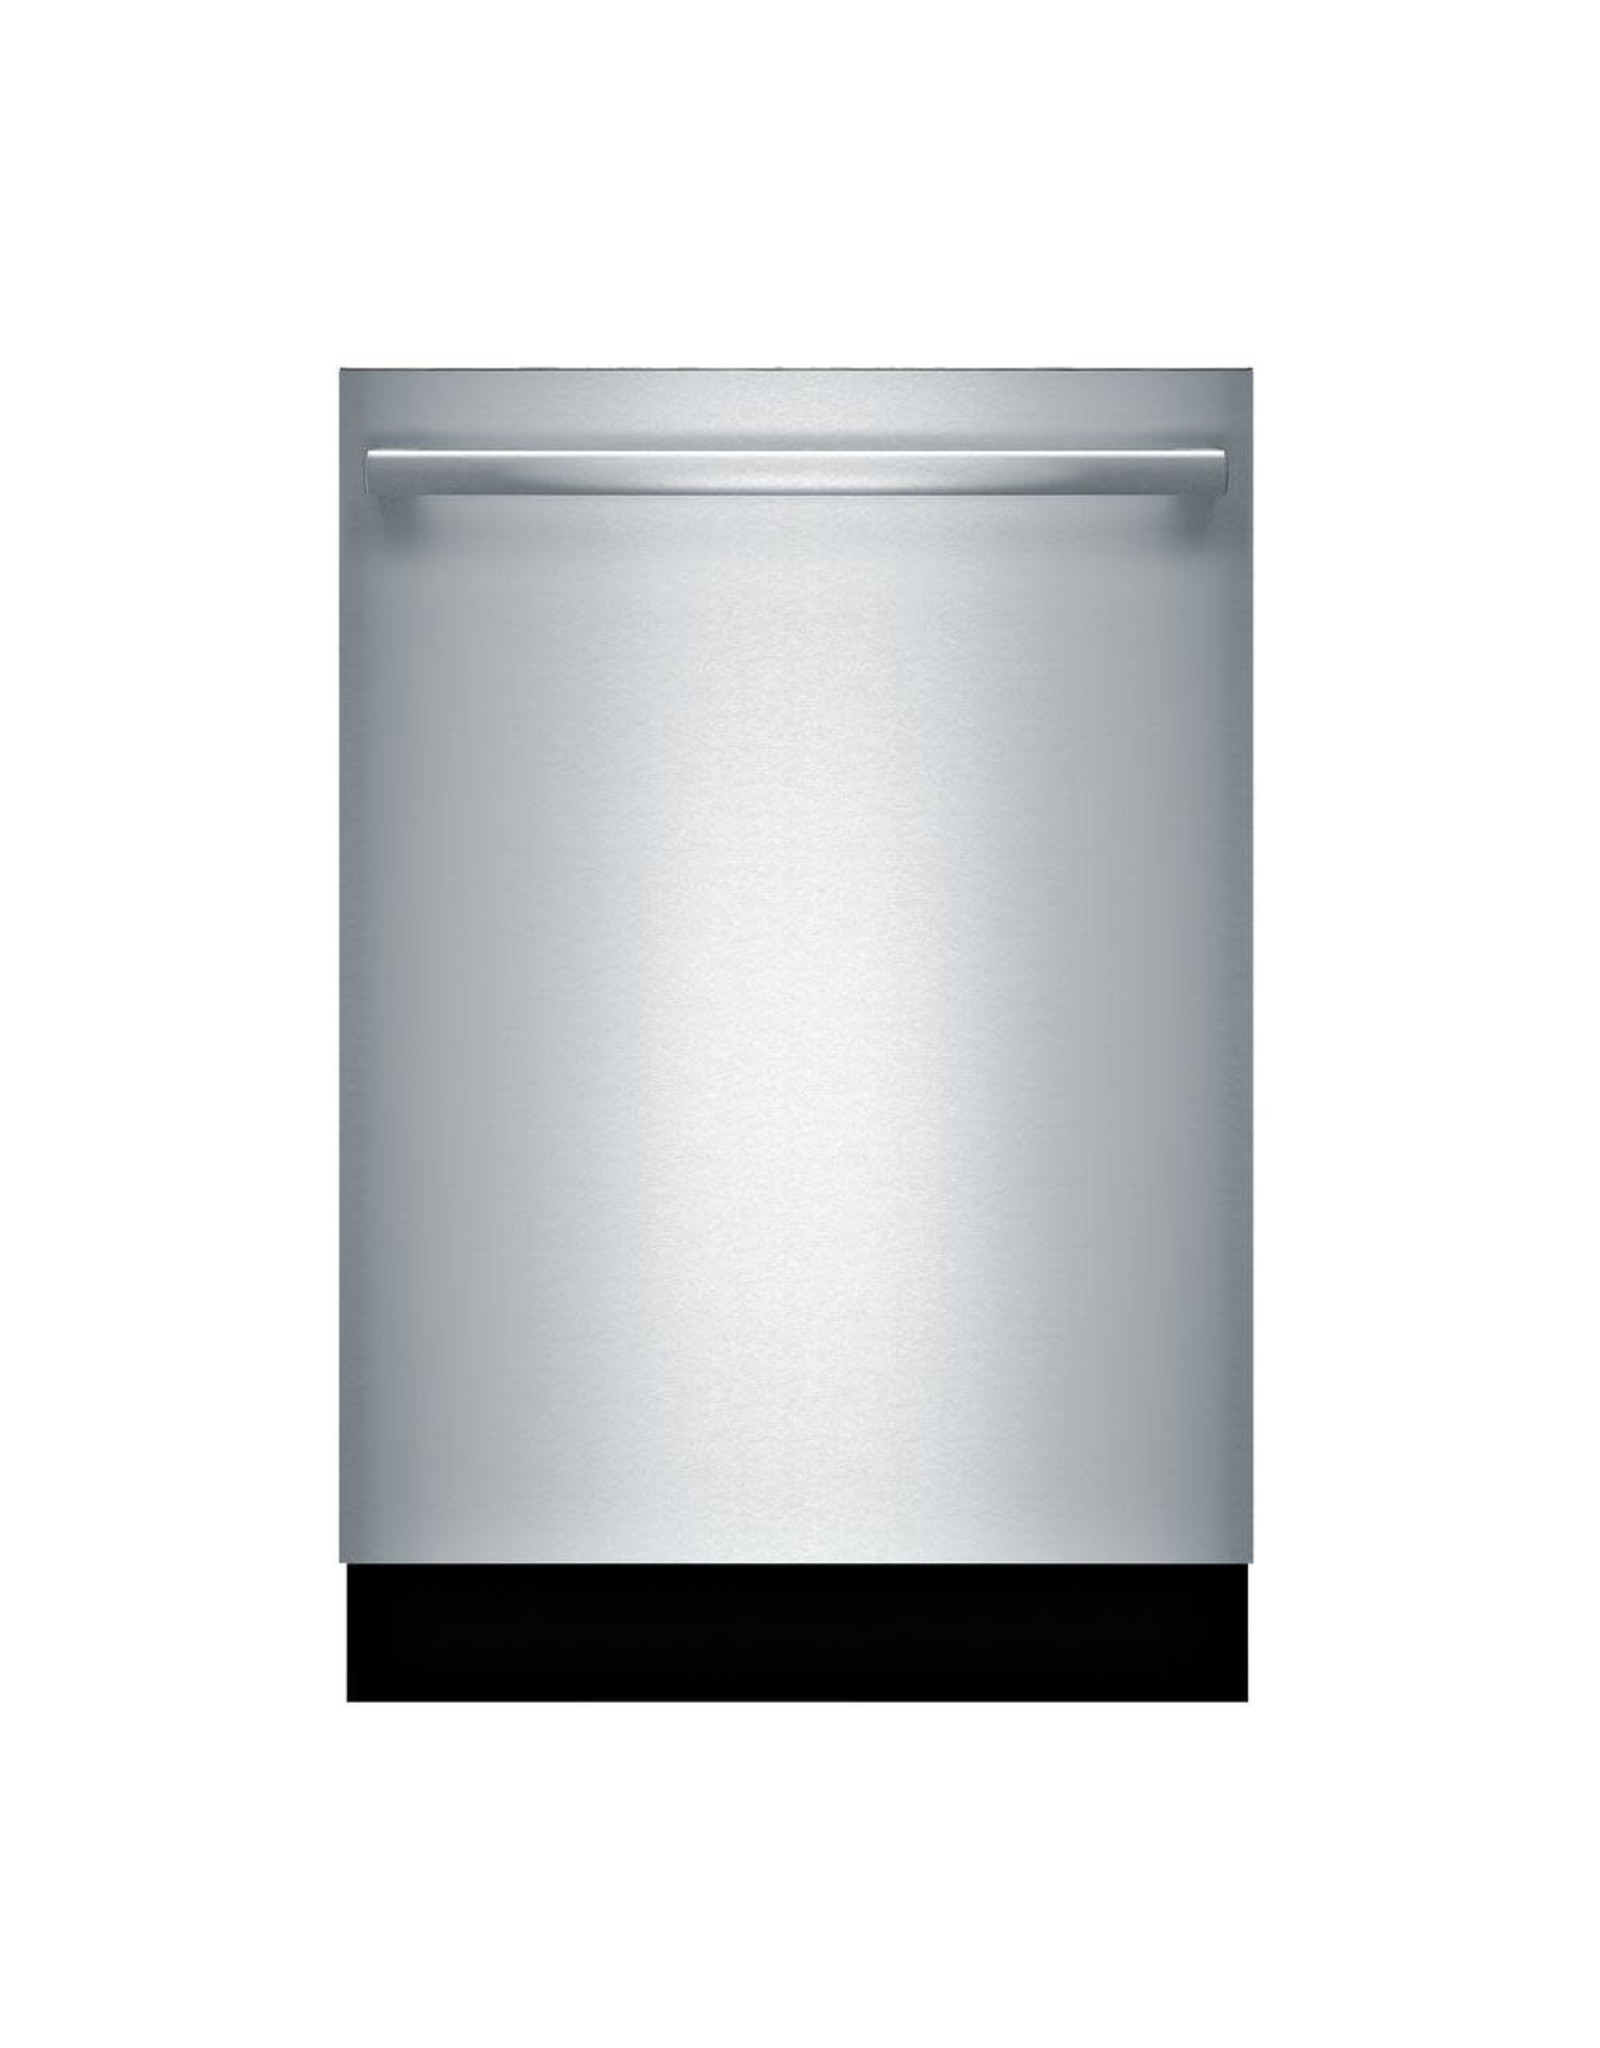 BOSCH SHXM78Z55N 800 Series Top Control Tall Tub Bar Handle Dishwasher in Stainless Steel with Stainless Steel Tub, CrystalDry, 42dBA